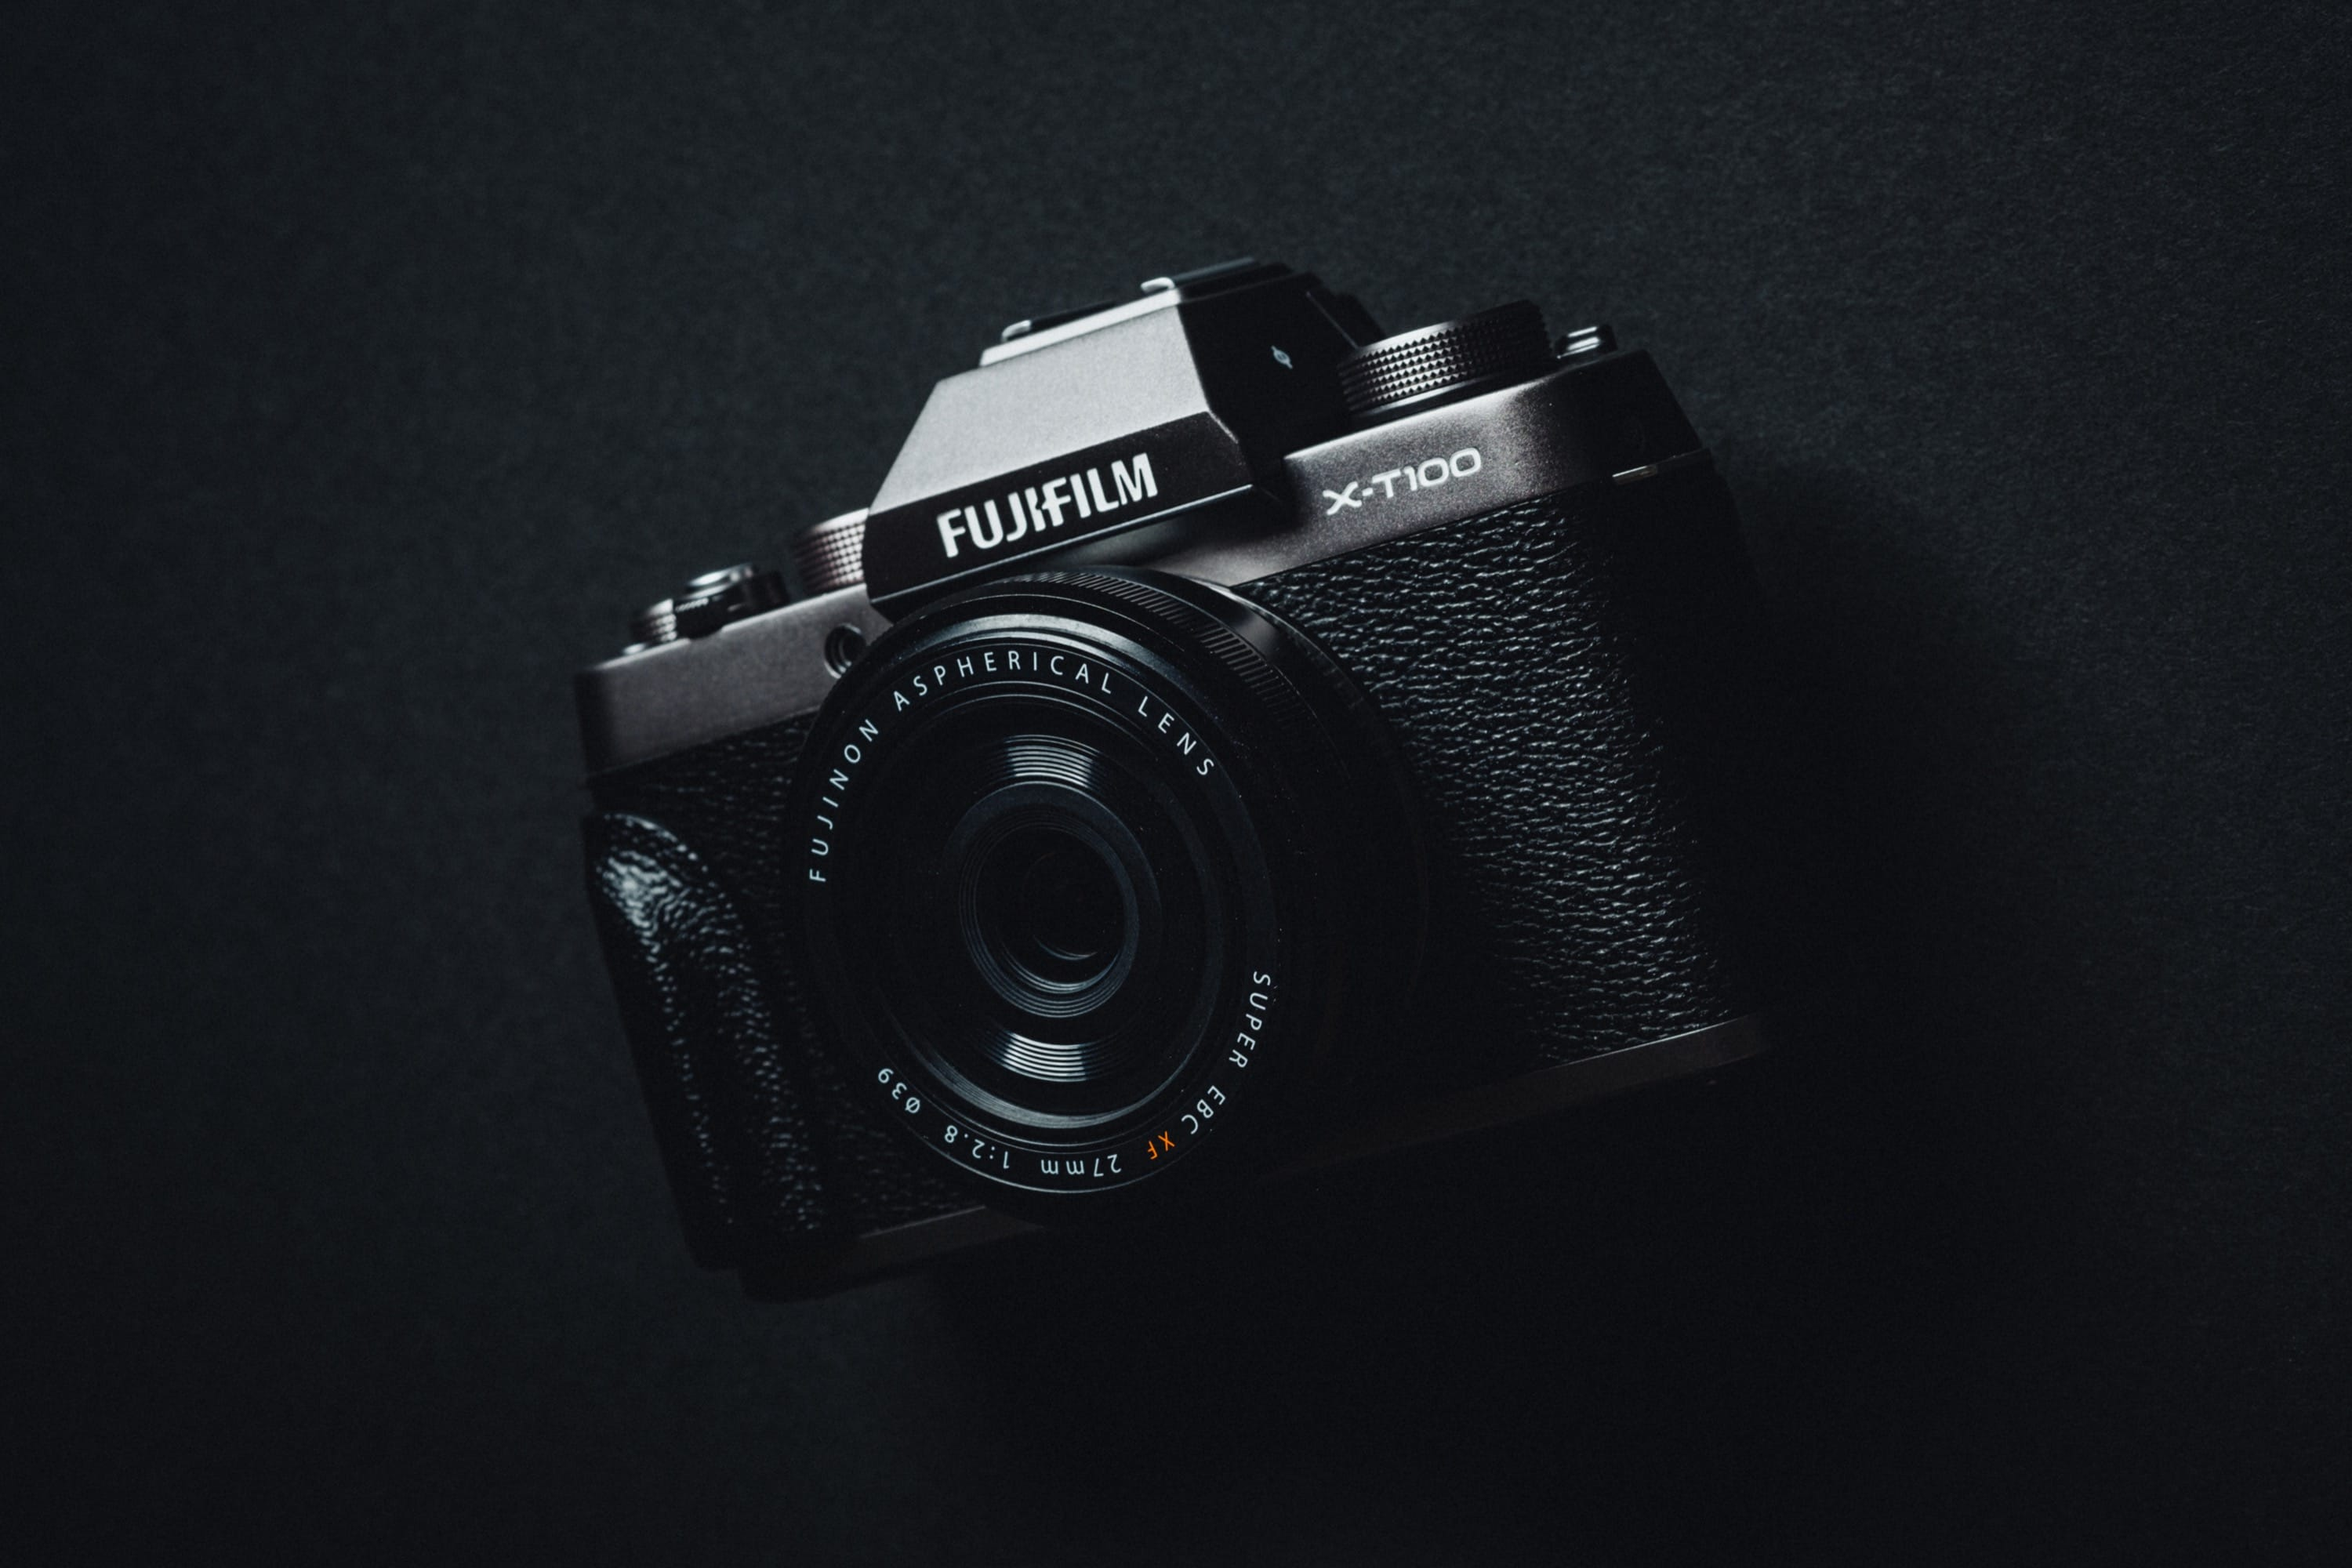 Fastest SD Memory Cards For The Fuji X-T100